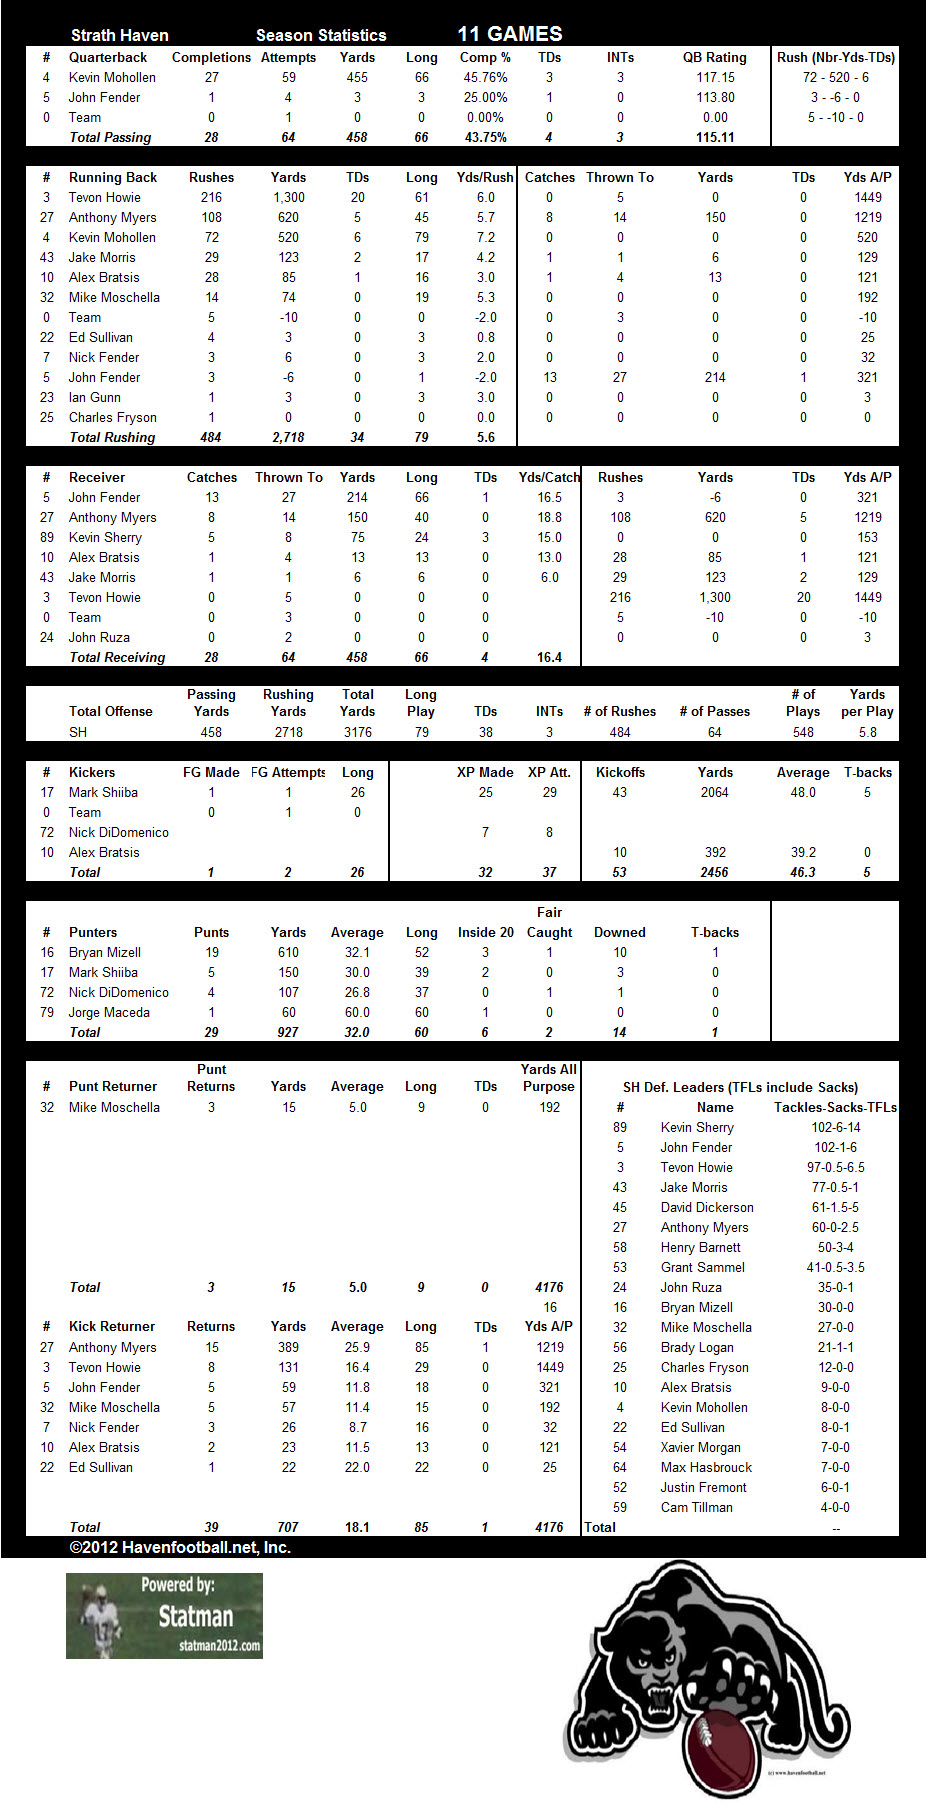 2012 Offensive Stats